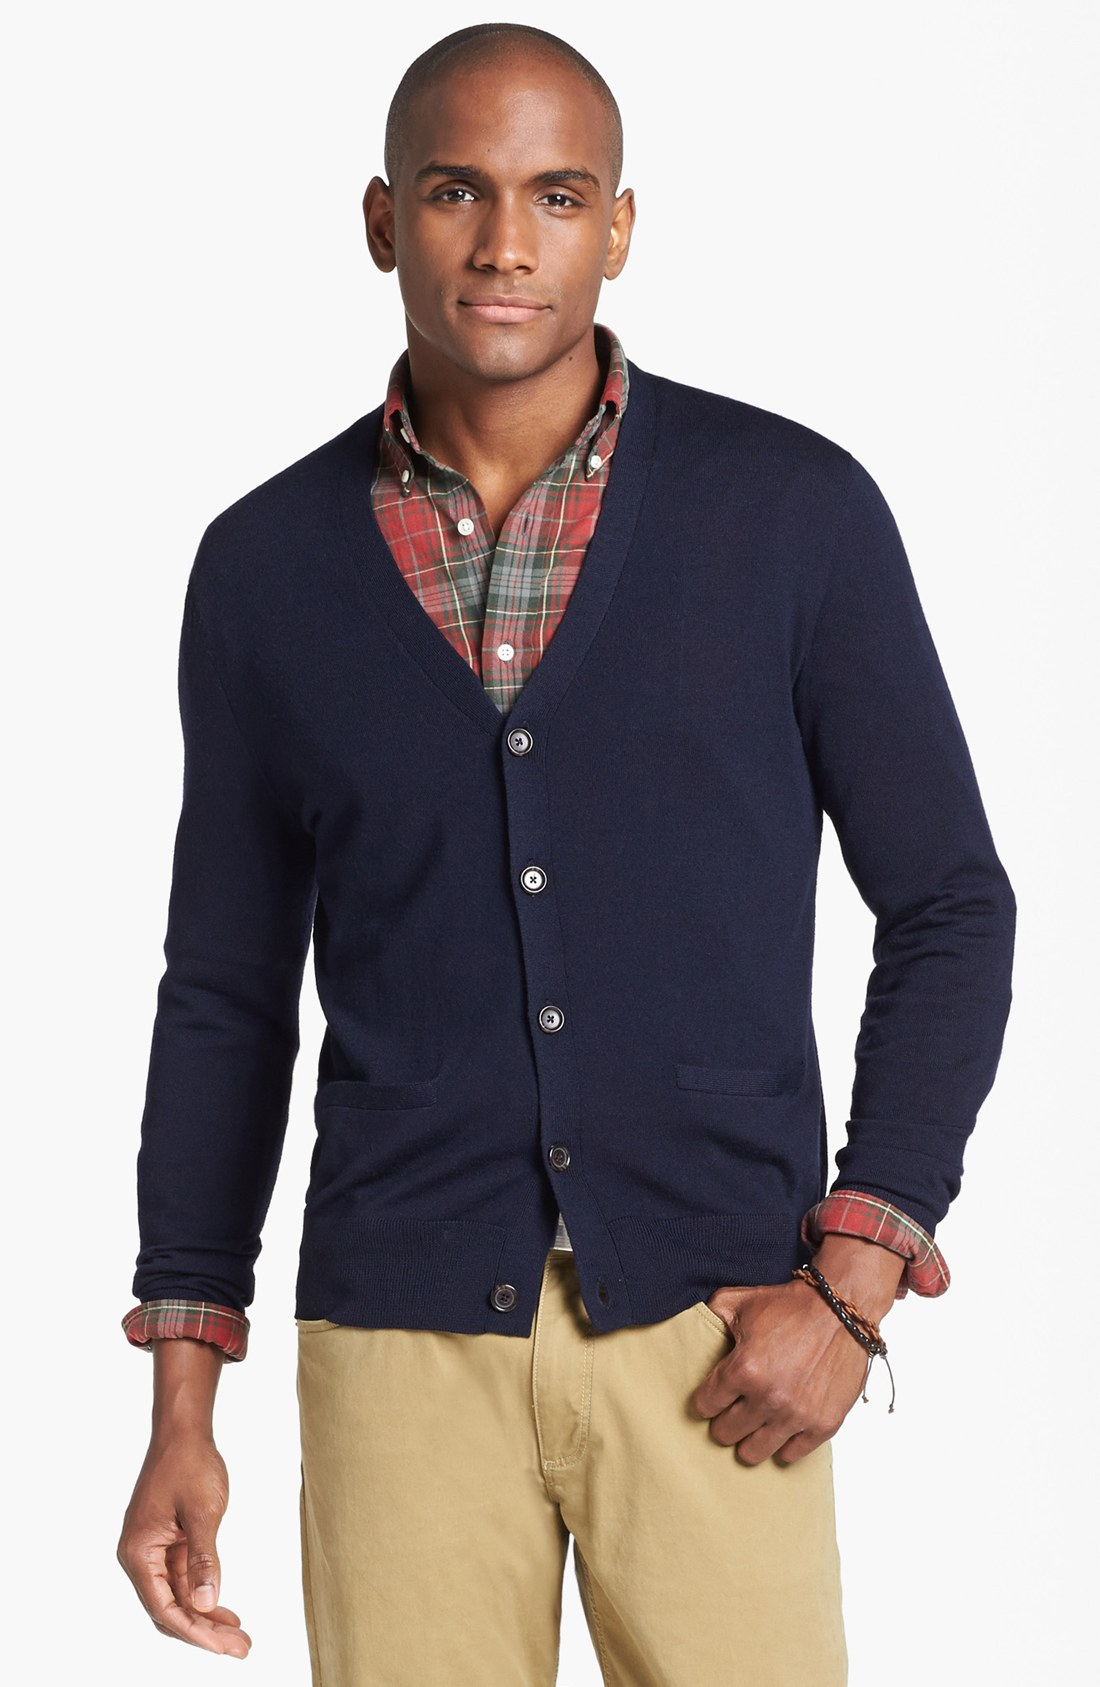 From button down cardigans that exude cool comfort to collared sweaters made for your preppy lifestyle, the Polo Ralph Lauren men's collection features your go-to fashion favorites. The All-American guy deserves an All-American sweater.